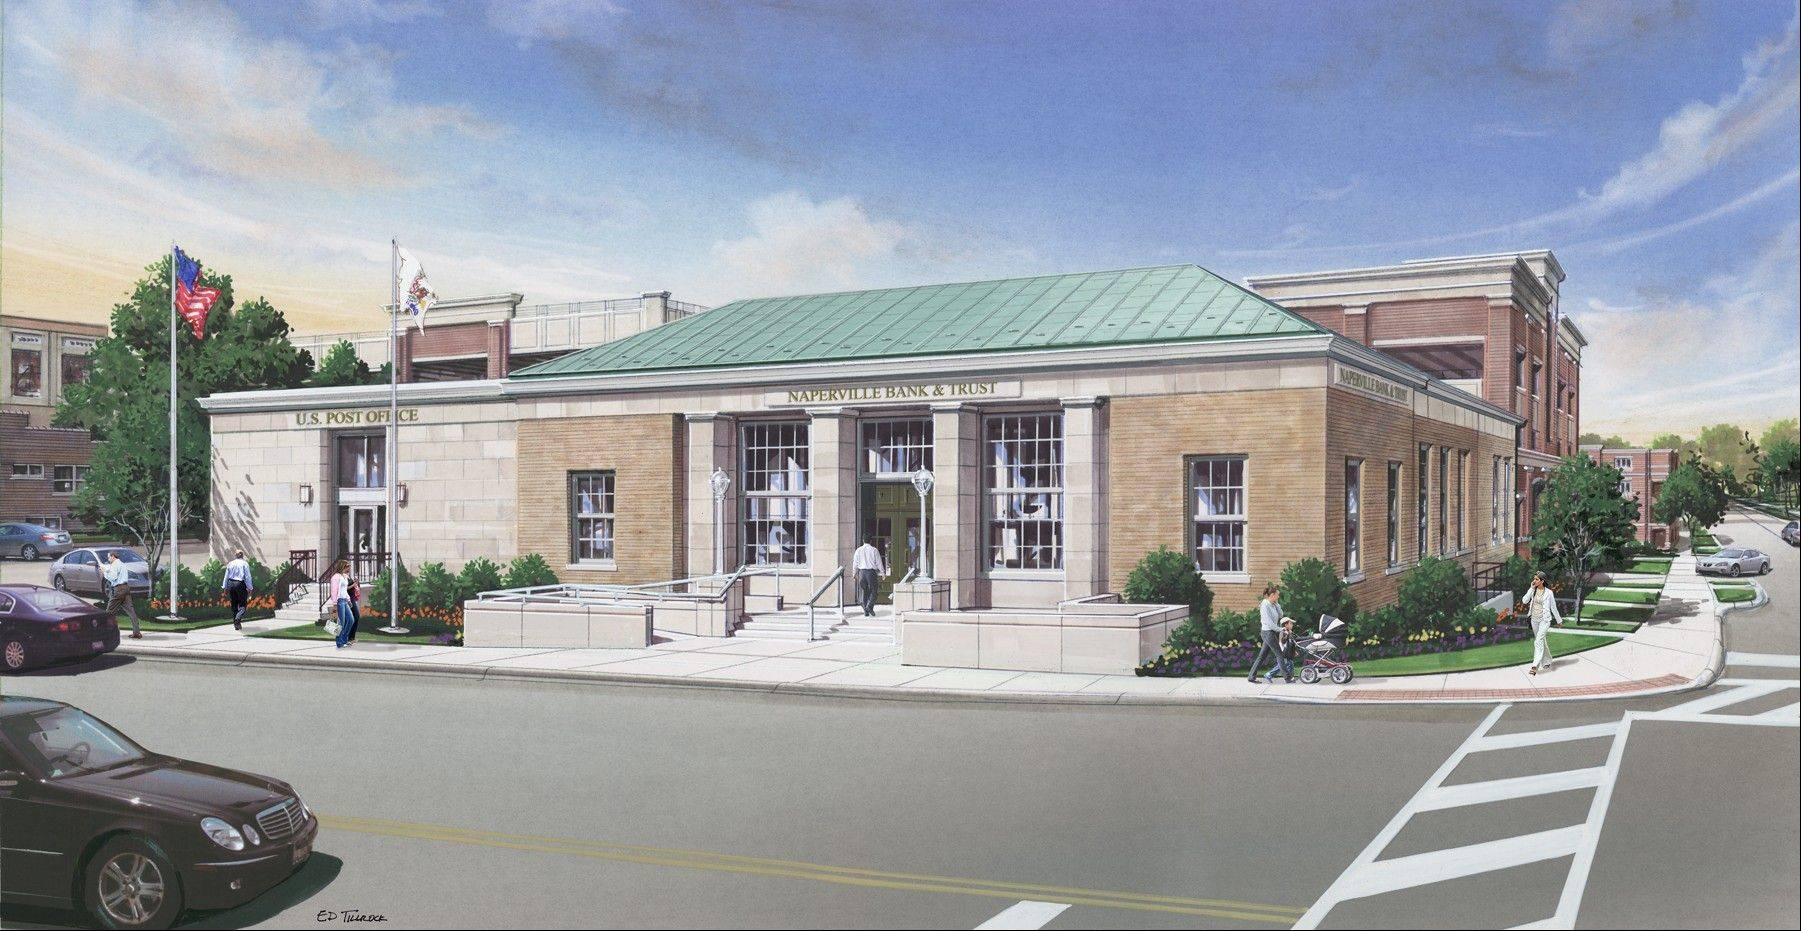 The exterior of the downtown Naperville Post Office will be returned to its original 1939 grandeur when it becomes the new downtown home of Naperville Bank & Trust early next year.